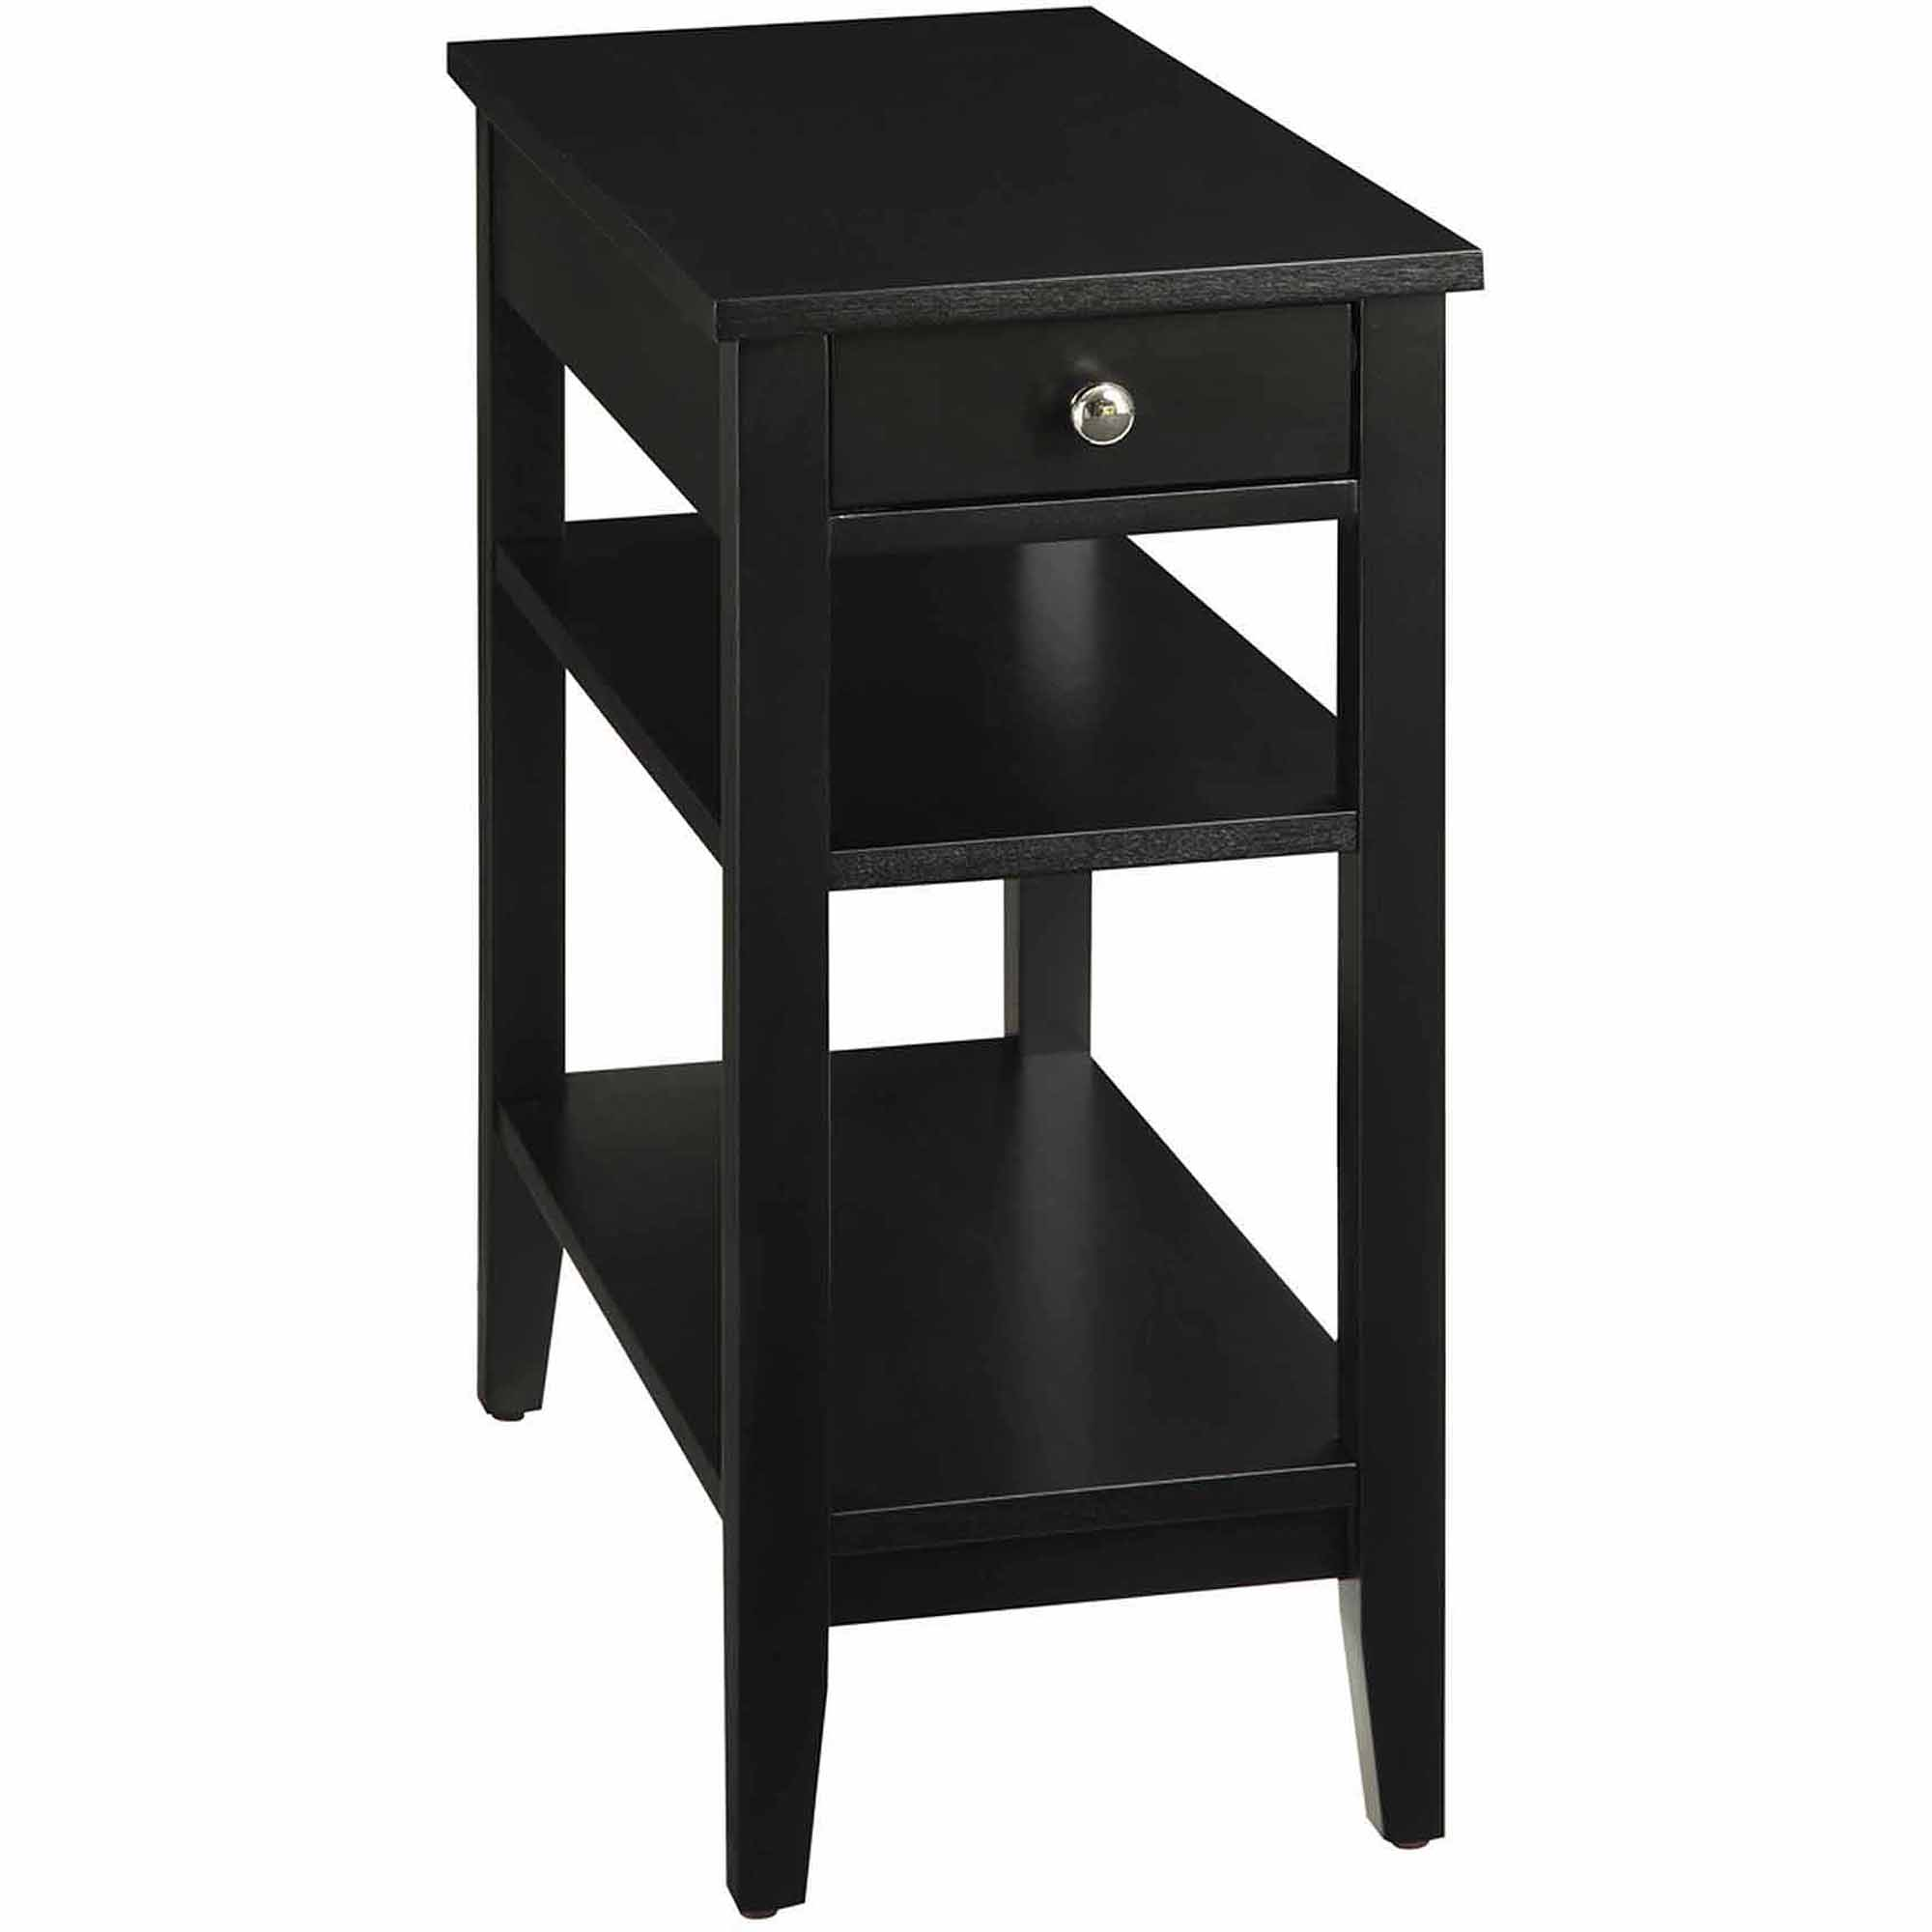 small end tables with drawers ideas interior segomego accent table tall storage best elegant black pertaining designs pottery barn round glass coffee mirrored side wicker garden